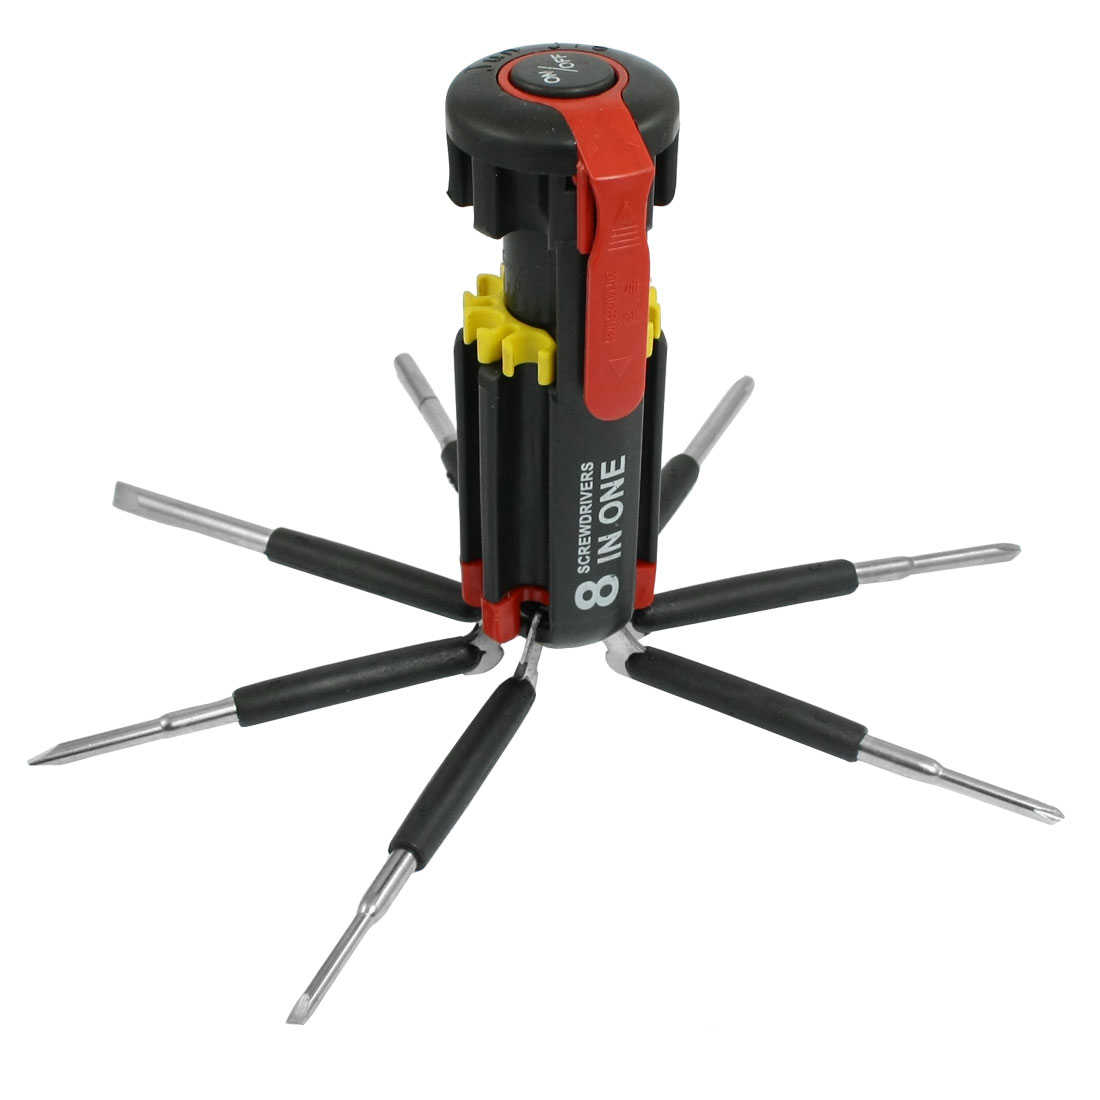 8 in 1 Folding Phillips Slotted Round Screwdriver w 6 LEDs Torch